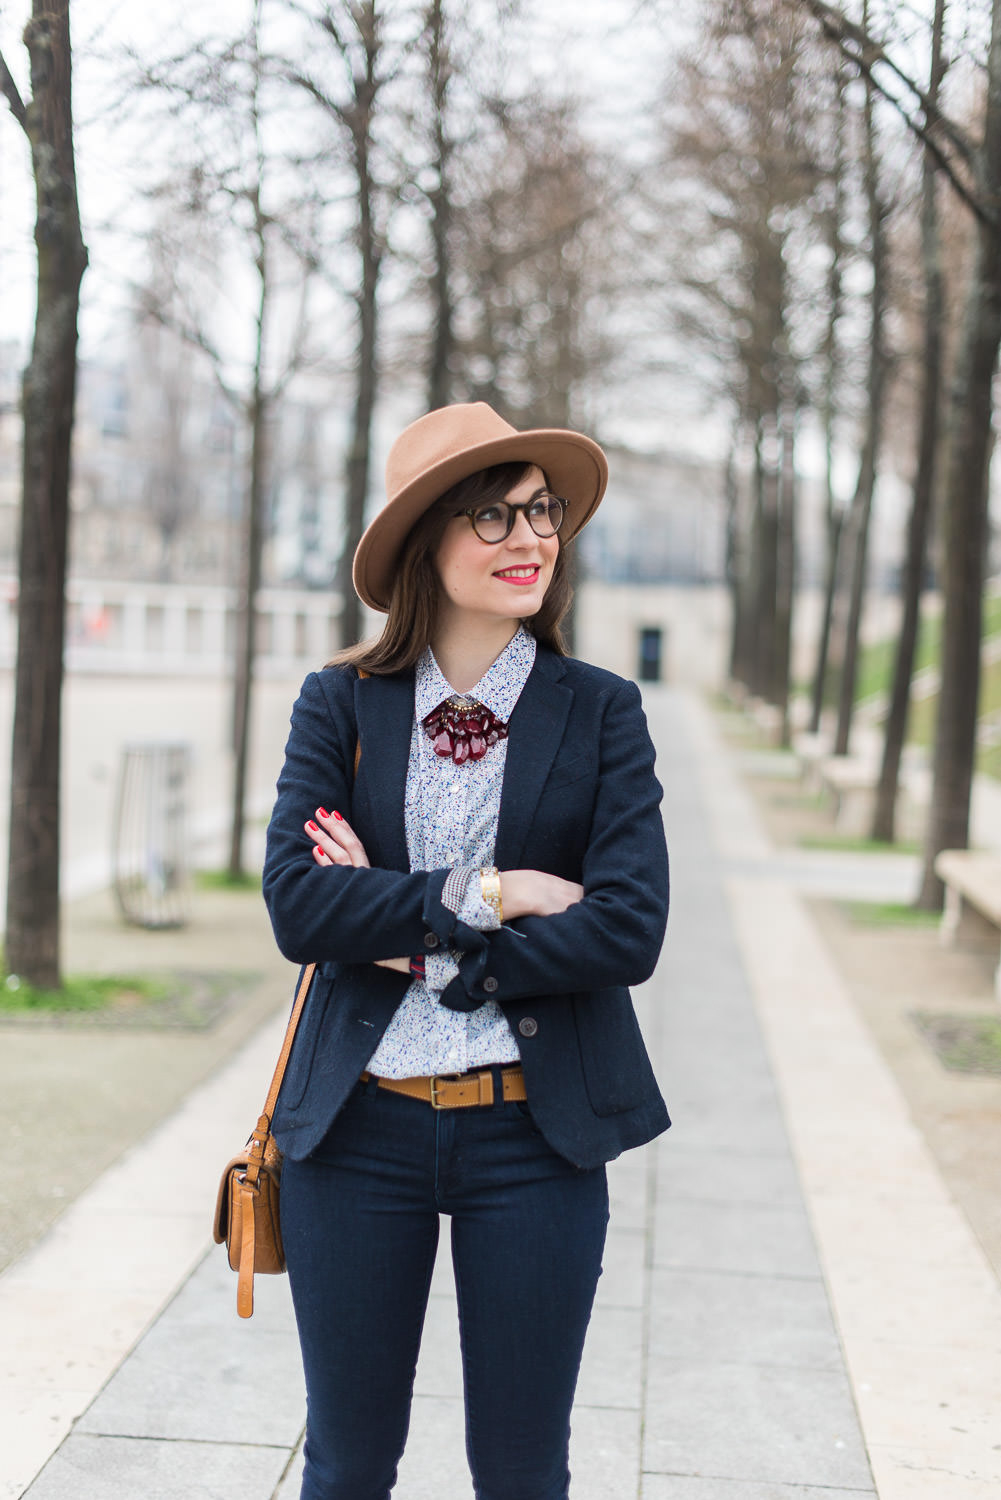 Blog-mode-Mode-And-The-City-looks-collaboration-clarks-orla-kiely-2-3